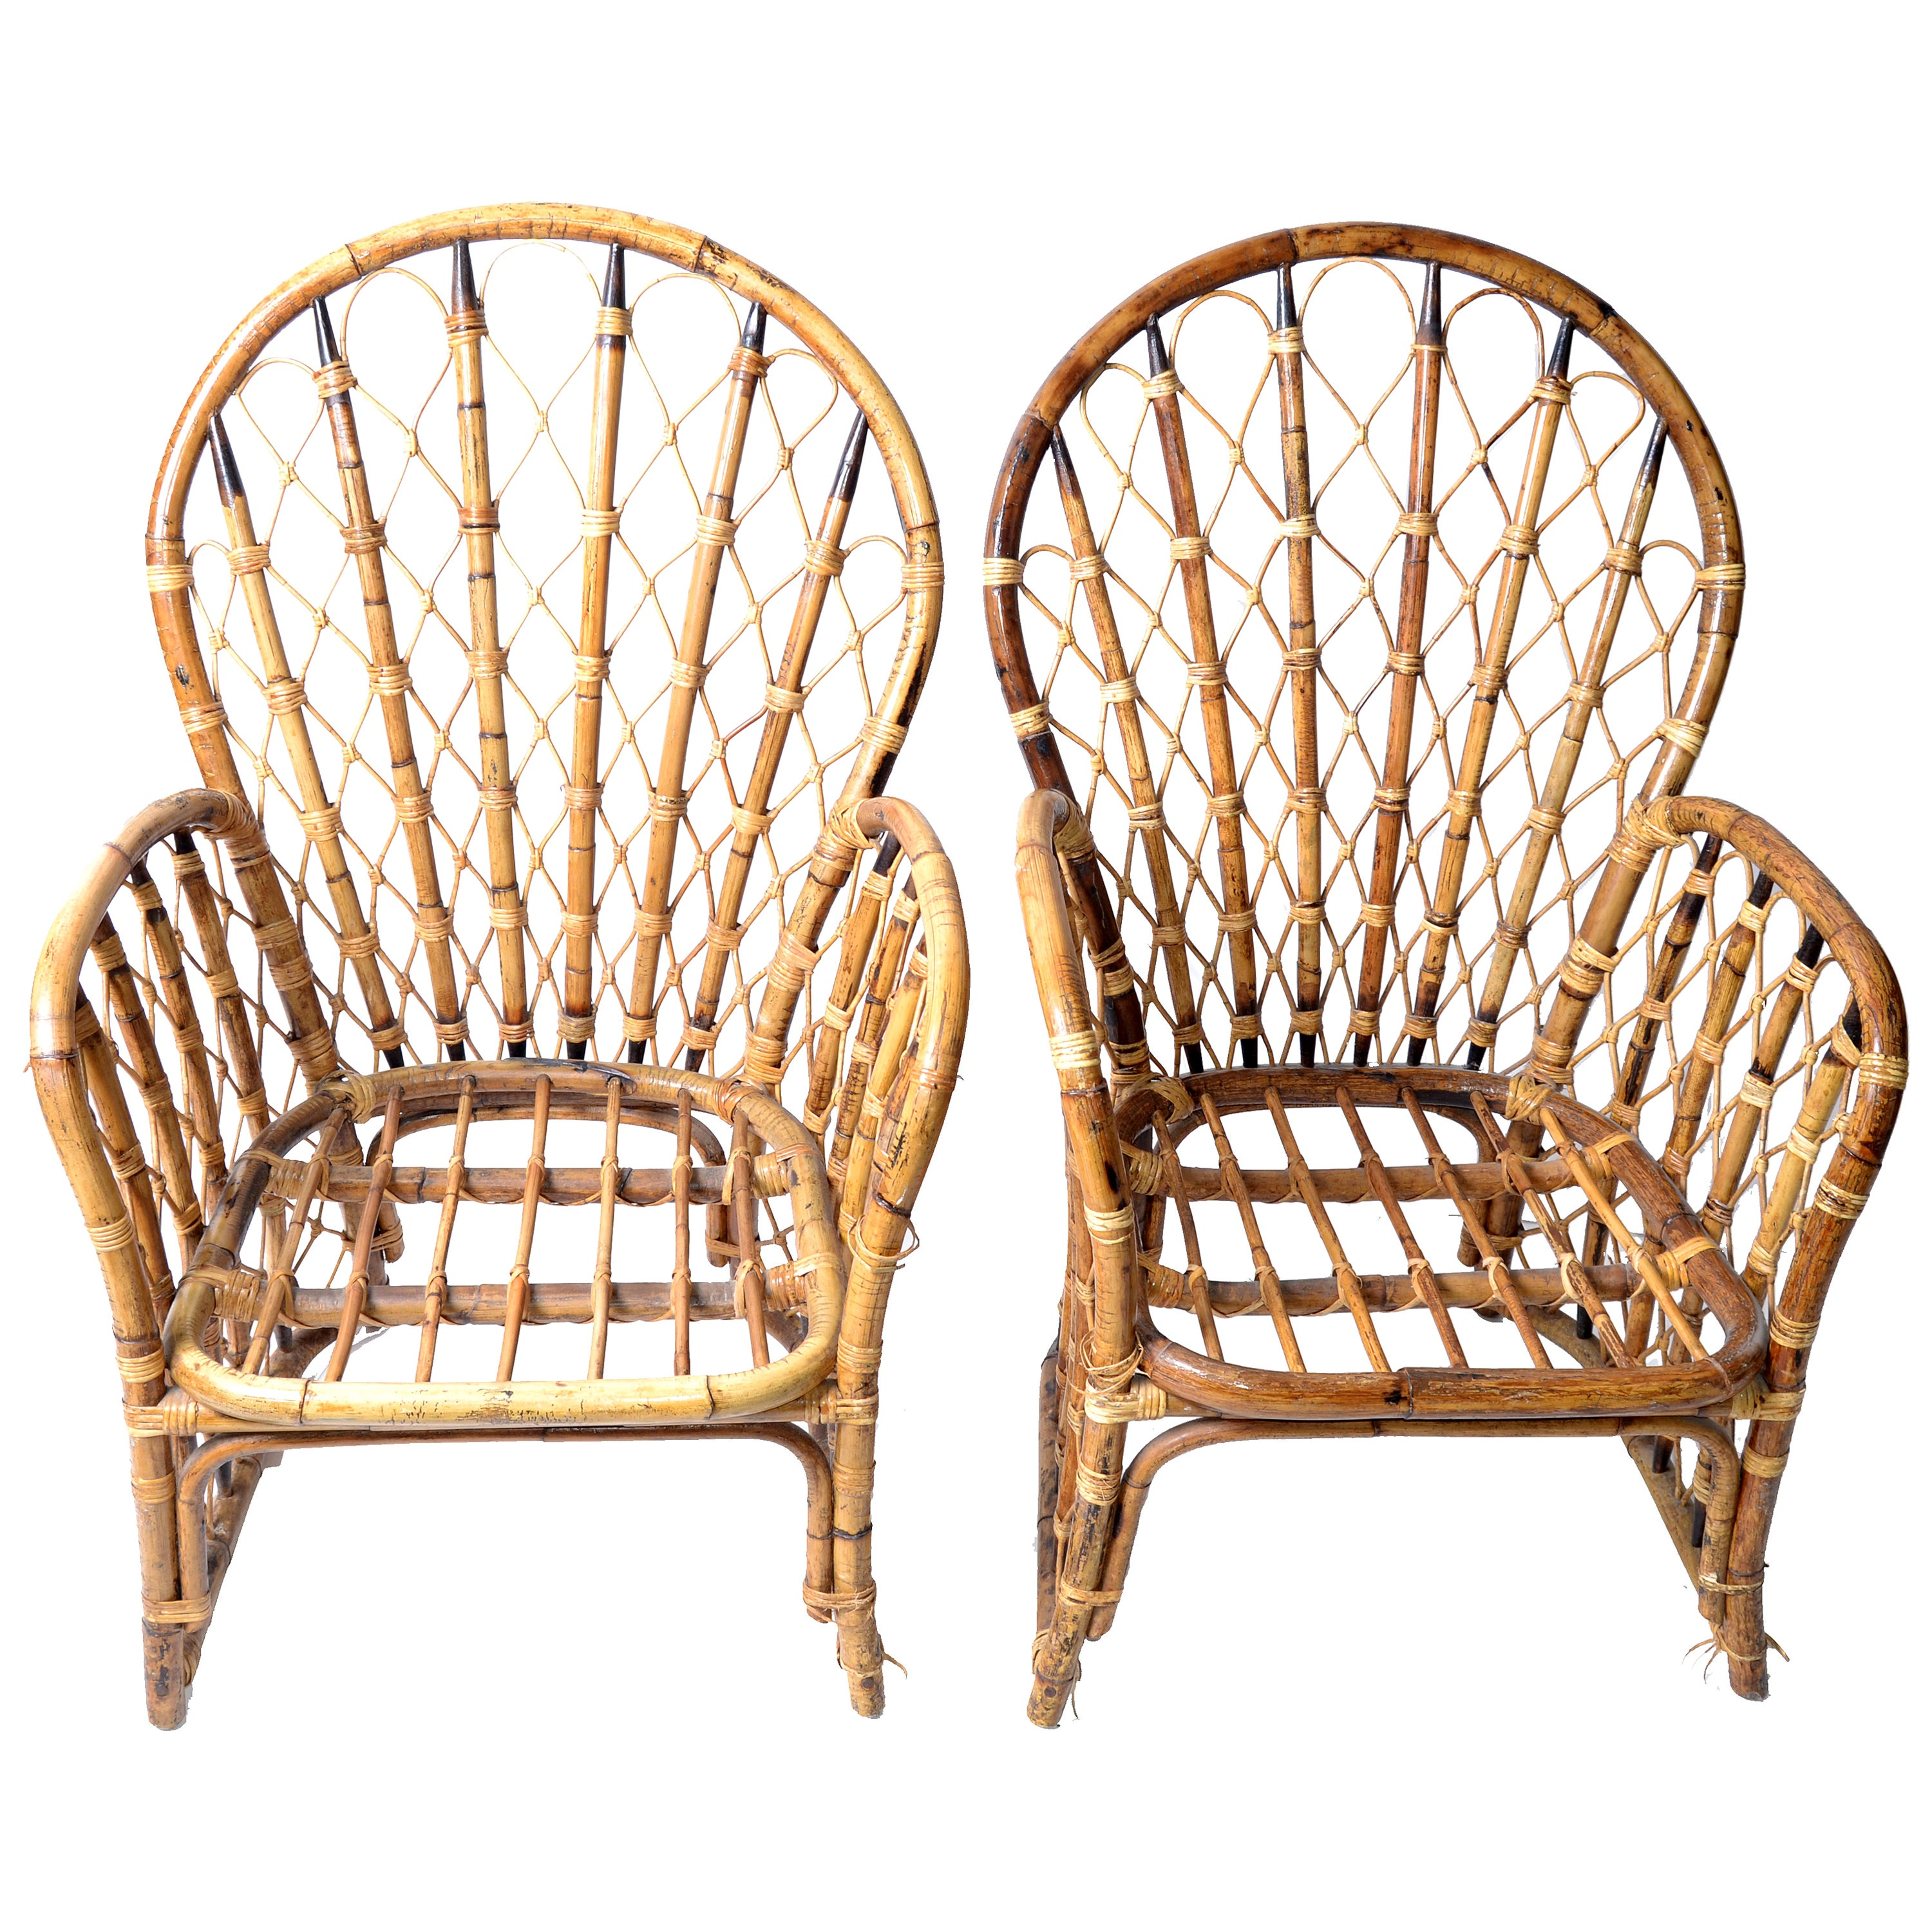 1970s Rattan, Wicker and Bamboo Dining Armchairs, Pair